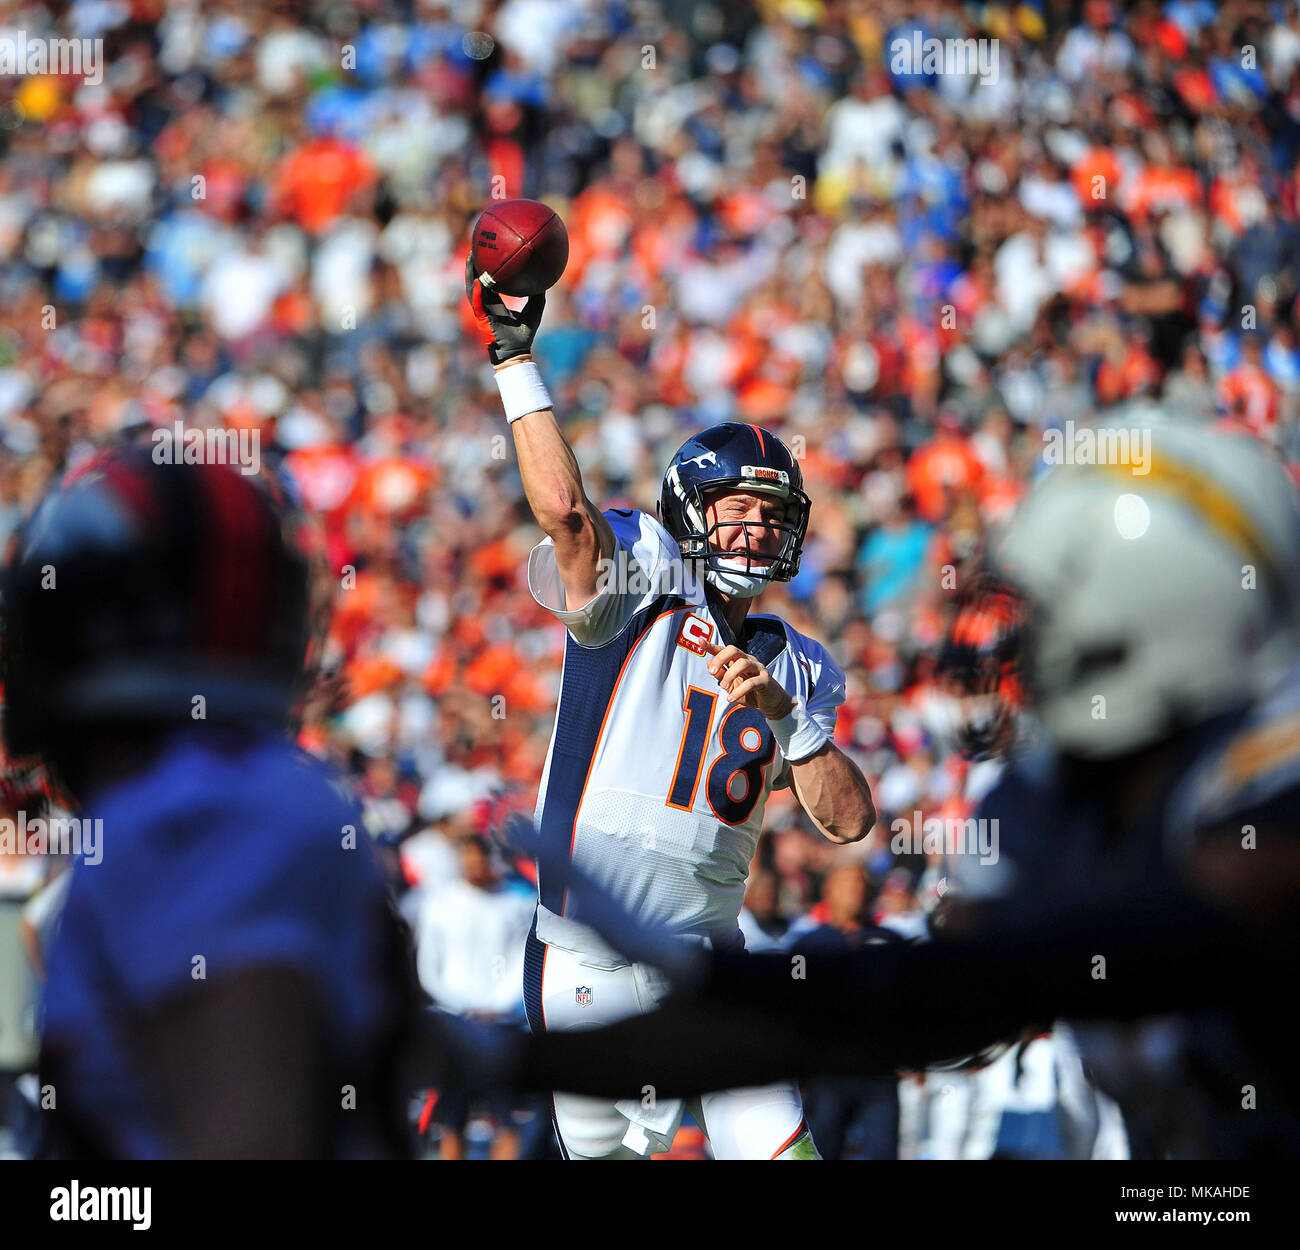 San Diego Chargers Game Live Online Free: California Dec 14th 2014 Stock Photos & California Dec